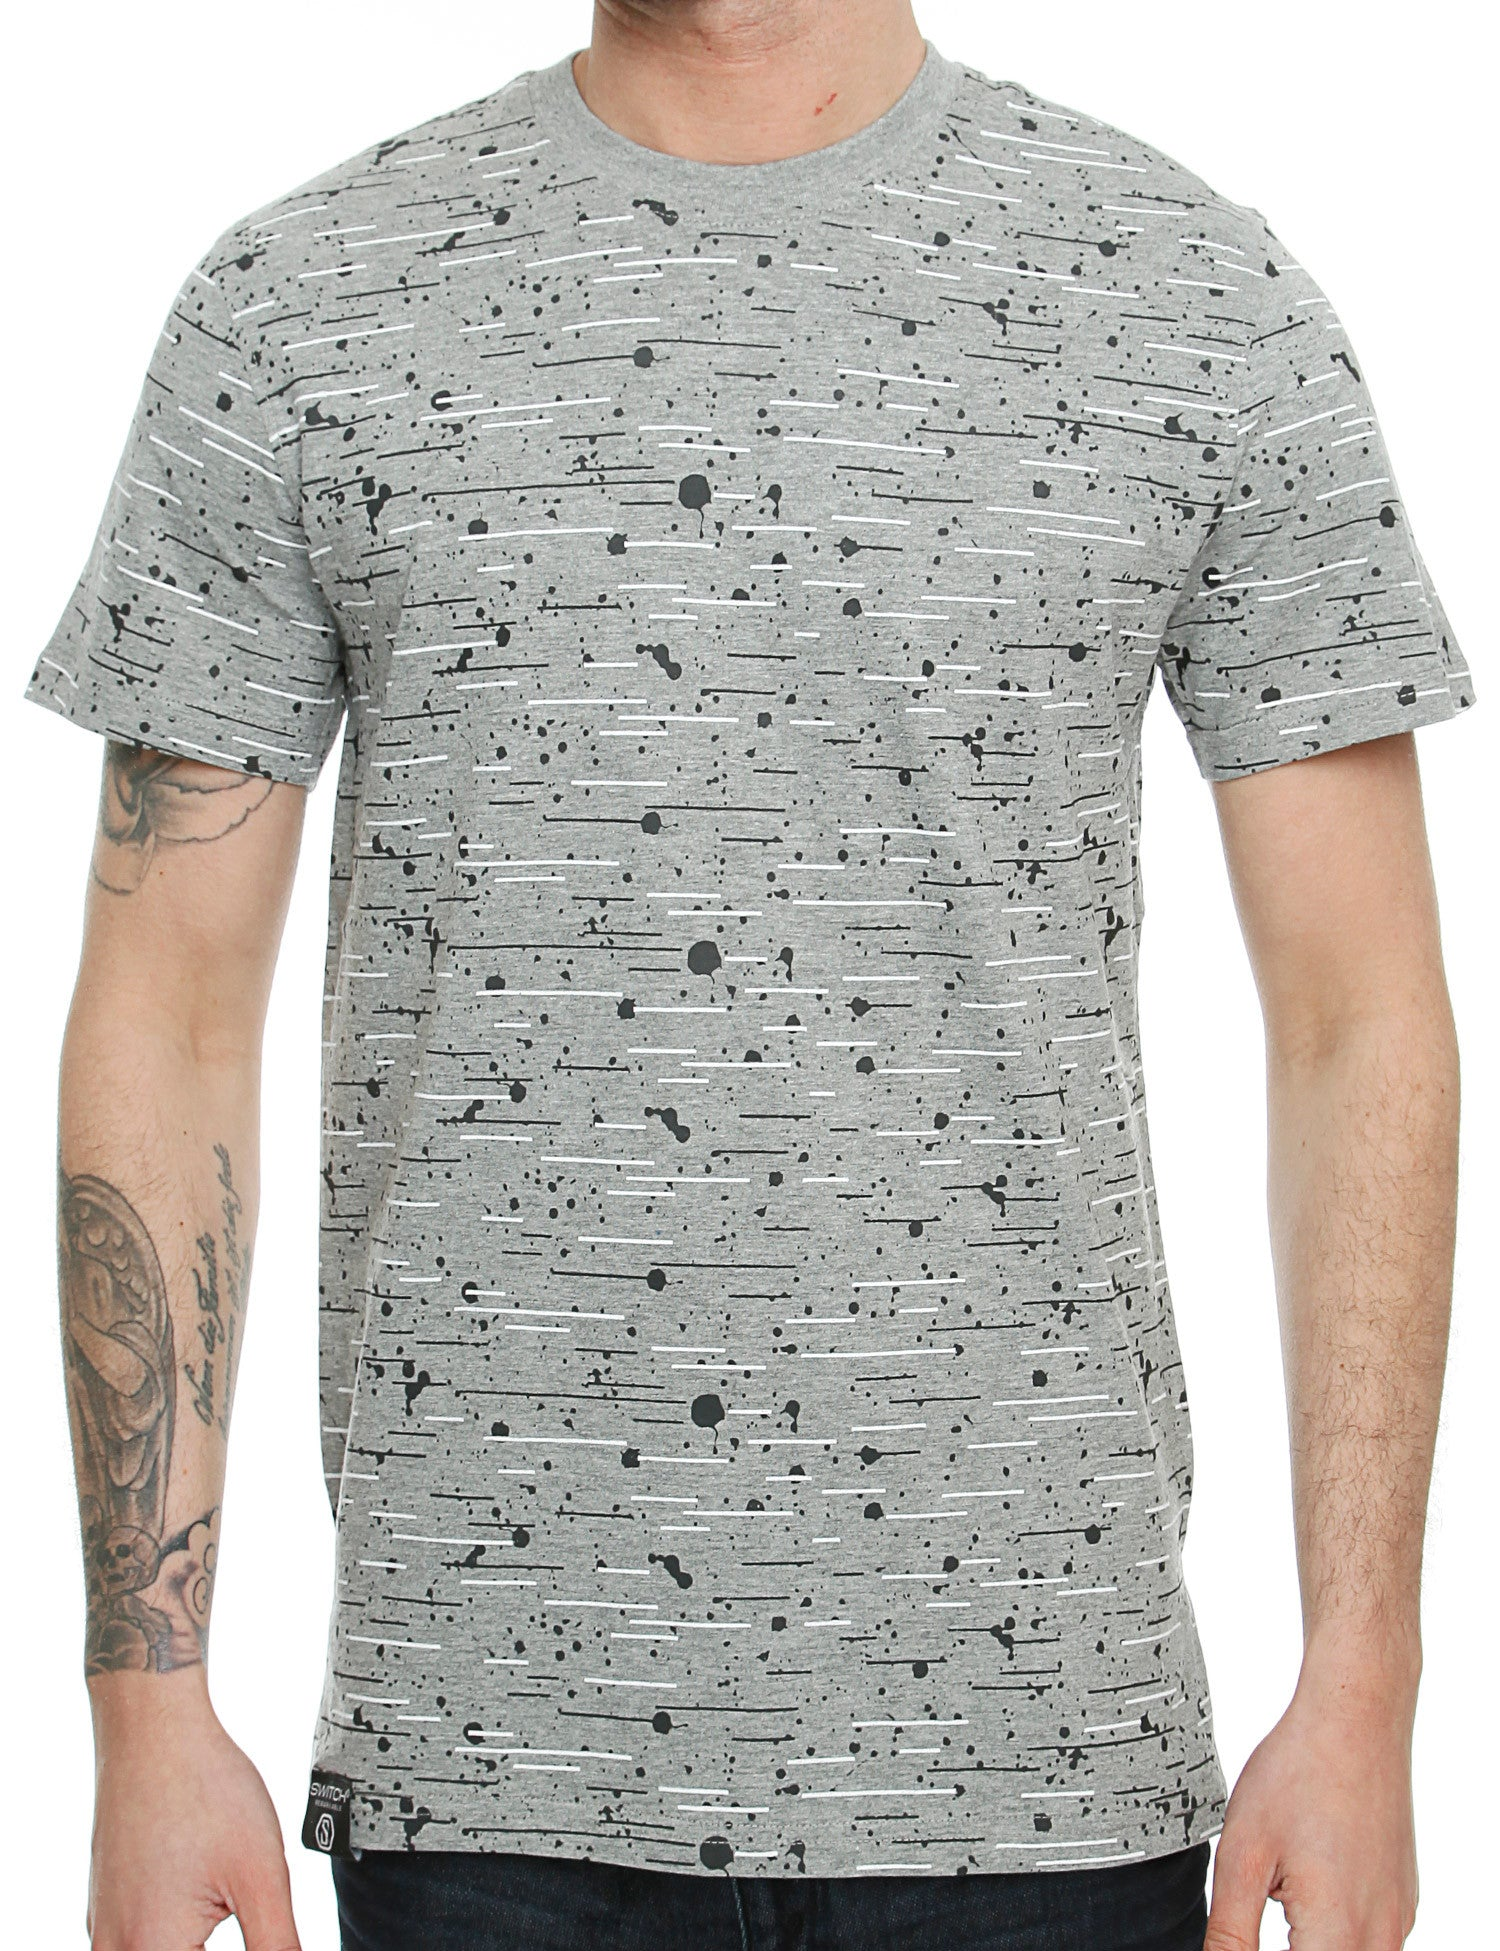 Switch Textur Print T-Shirt SS6016 Grey